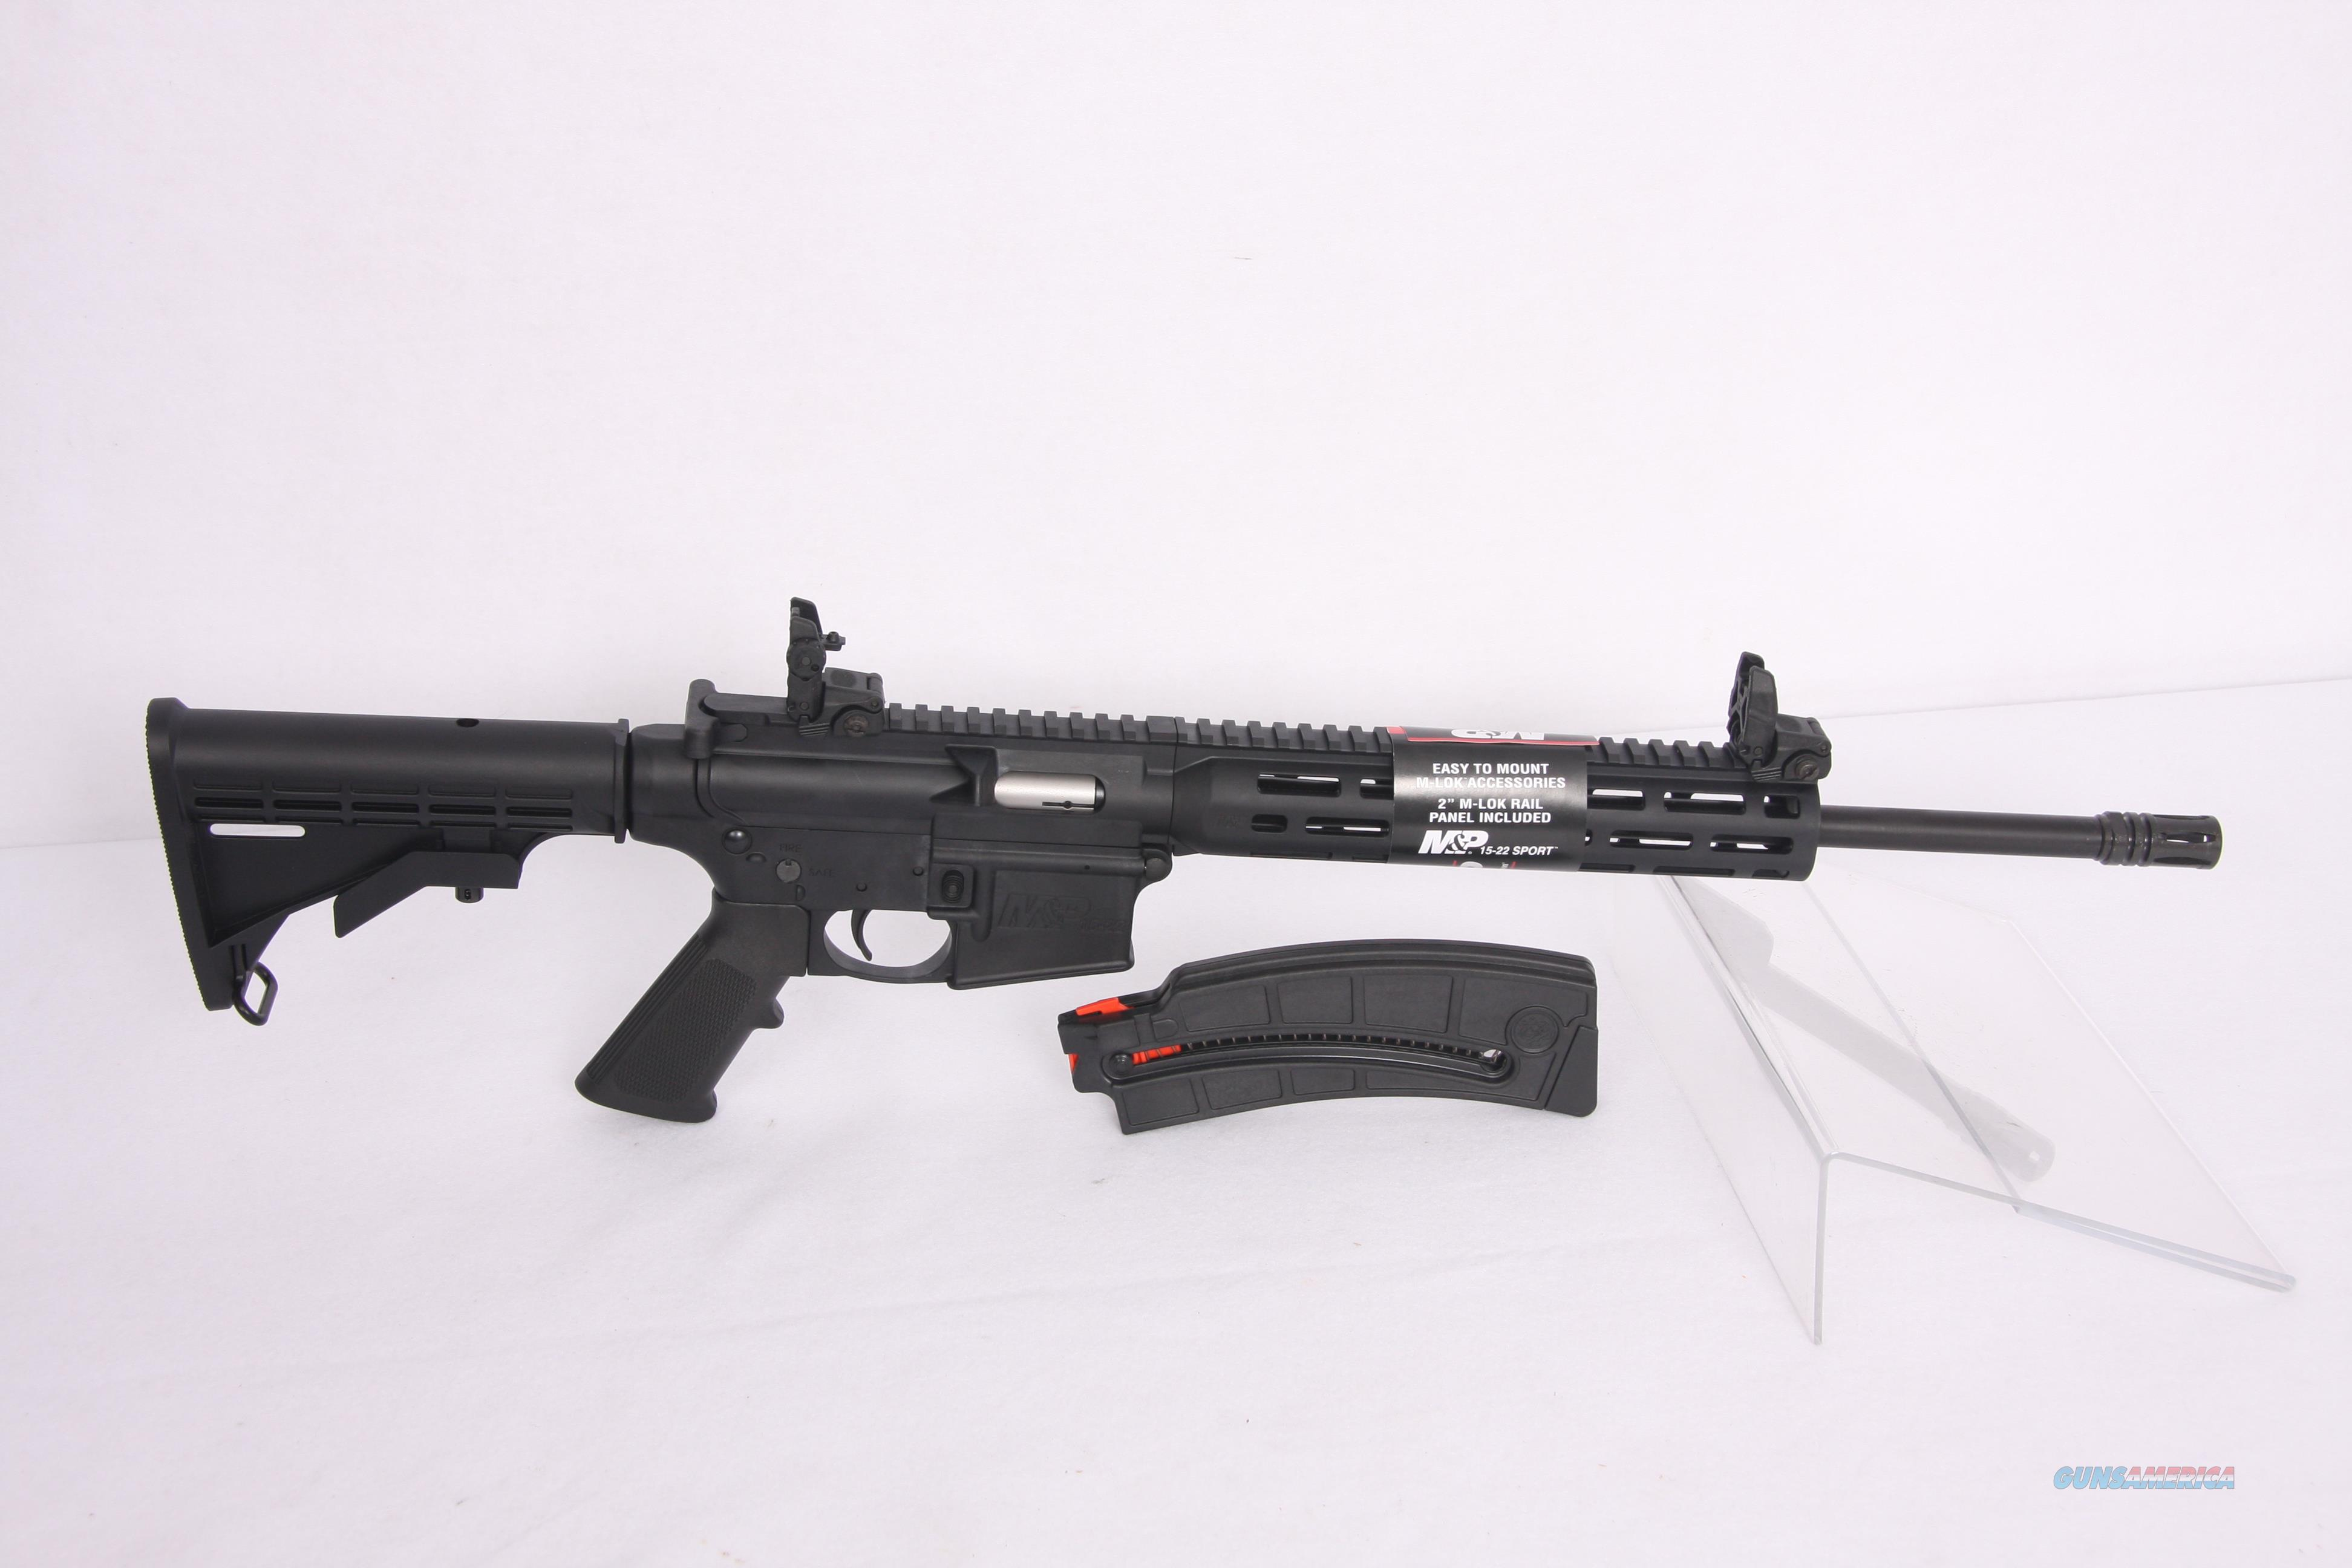 SW MP 15-22 Sport .22Lr  Guns > Rifles > Smith & Wesson Rifles > M&P